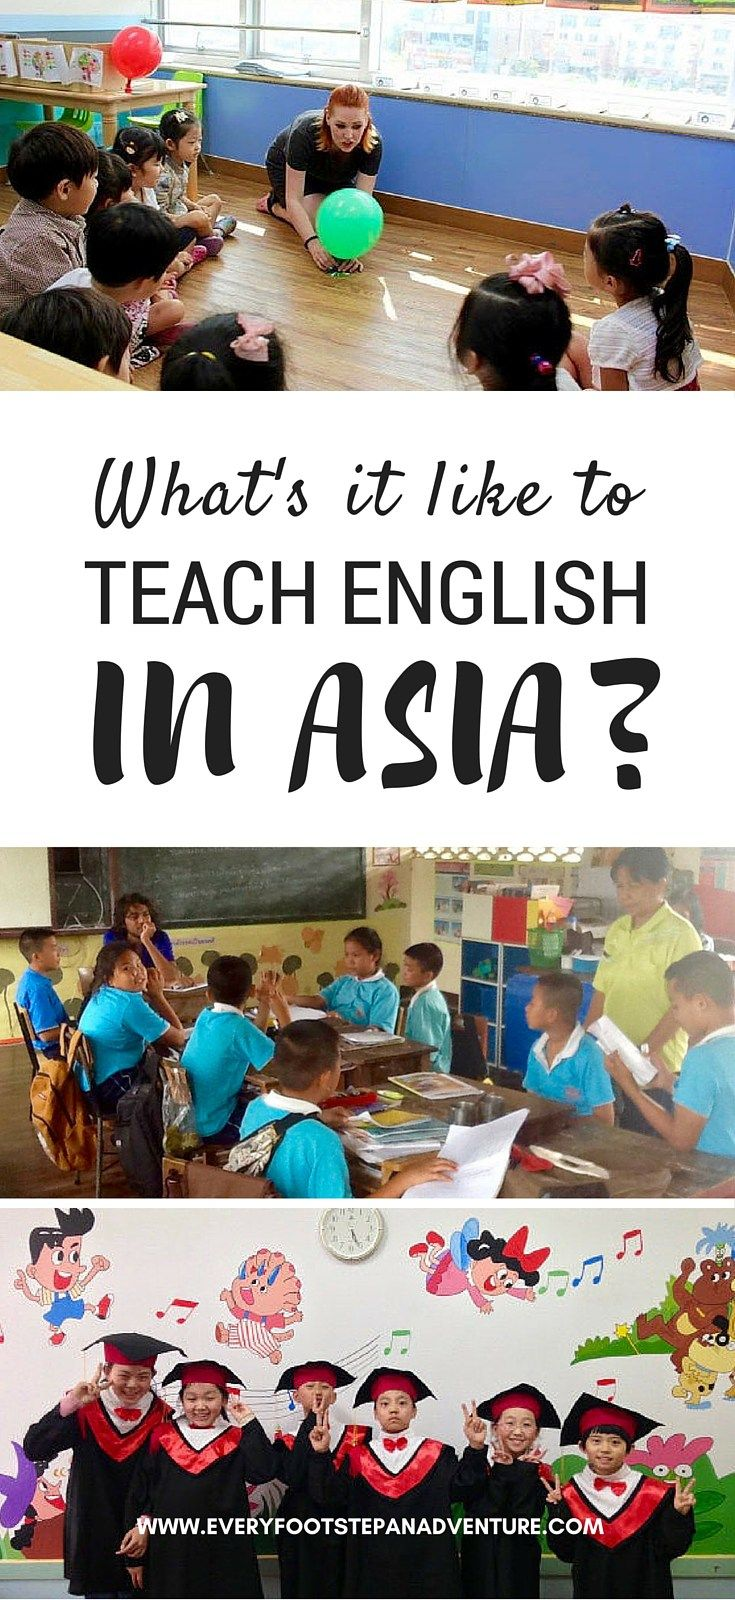 Want to teach English abroad? Find out why these three people loved their experiences teaching English in Asia — stories from South Korea, Thailand, and China!